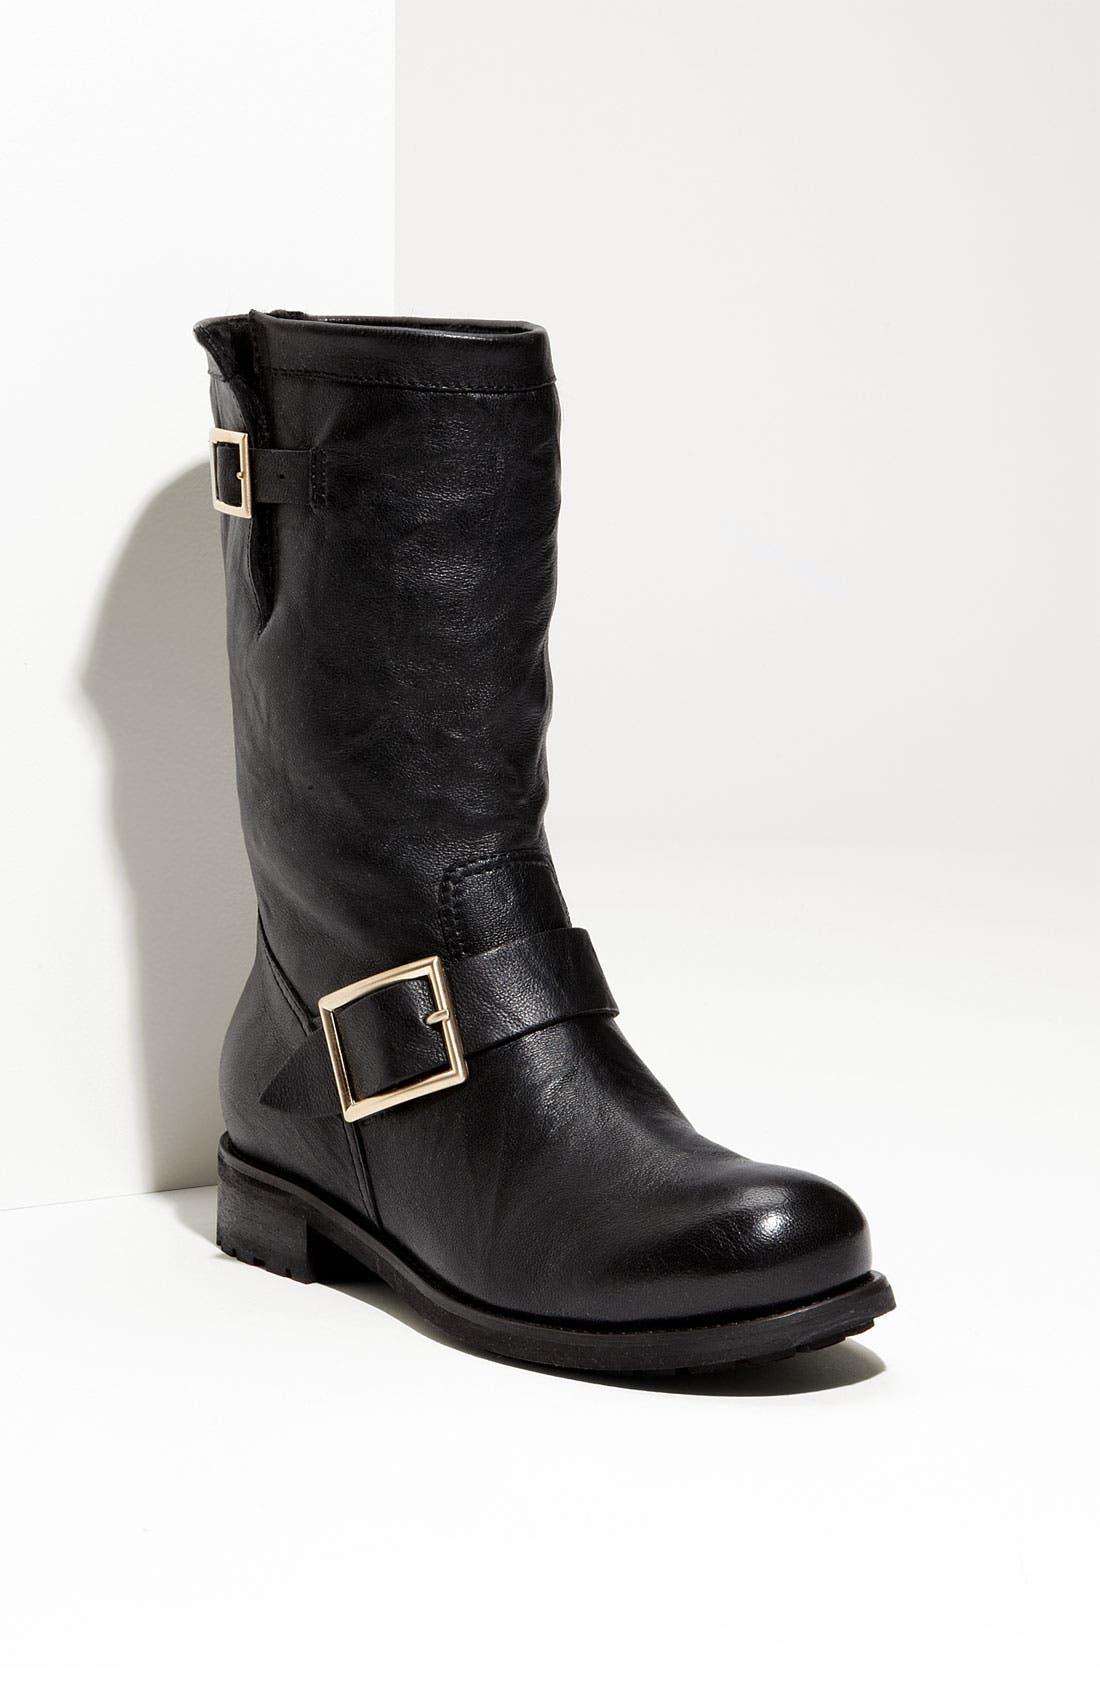 Alternate Image 1 Selected - Jimmy Choo Rabbit Fur & Leather Biker Boot